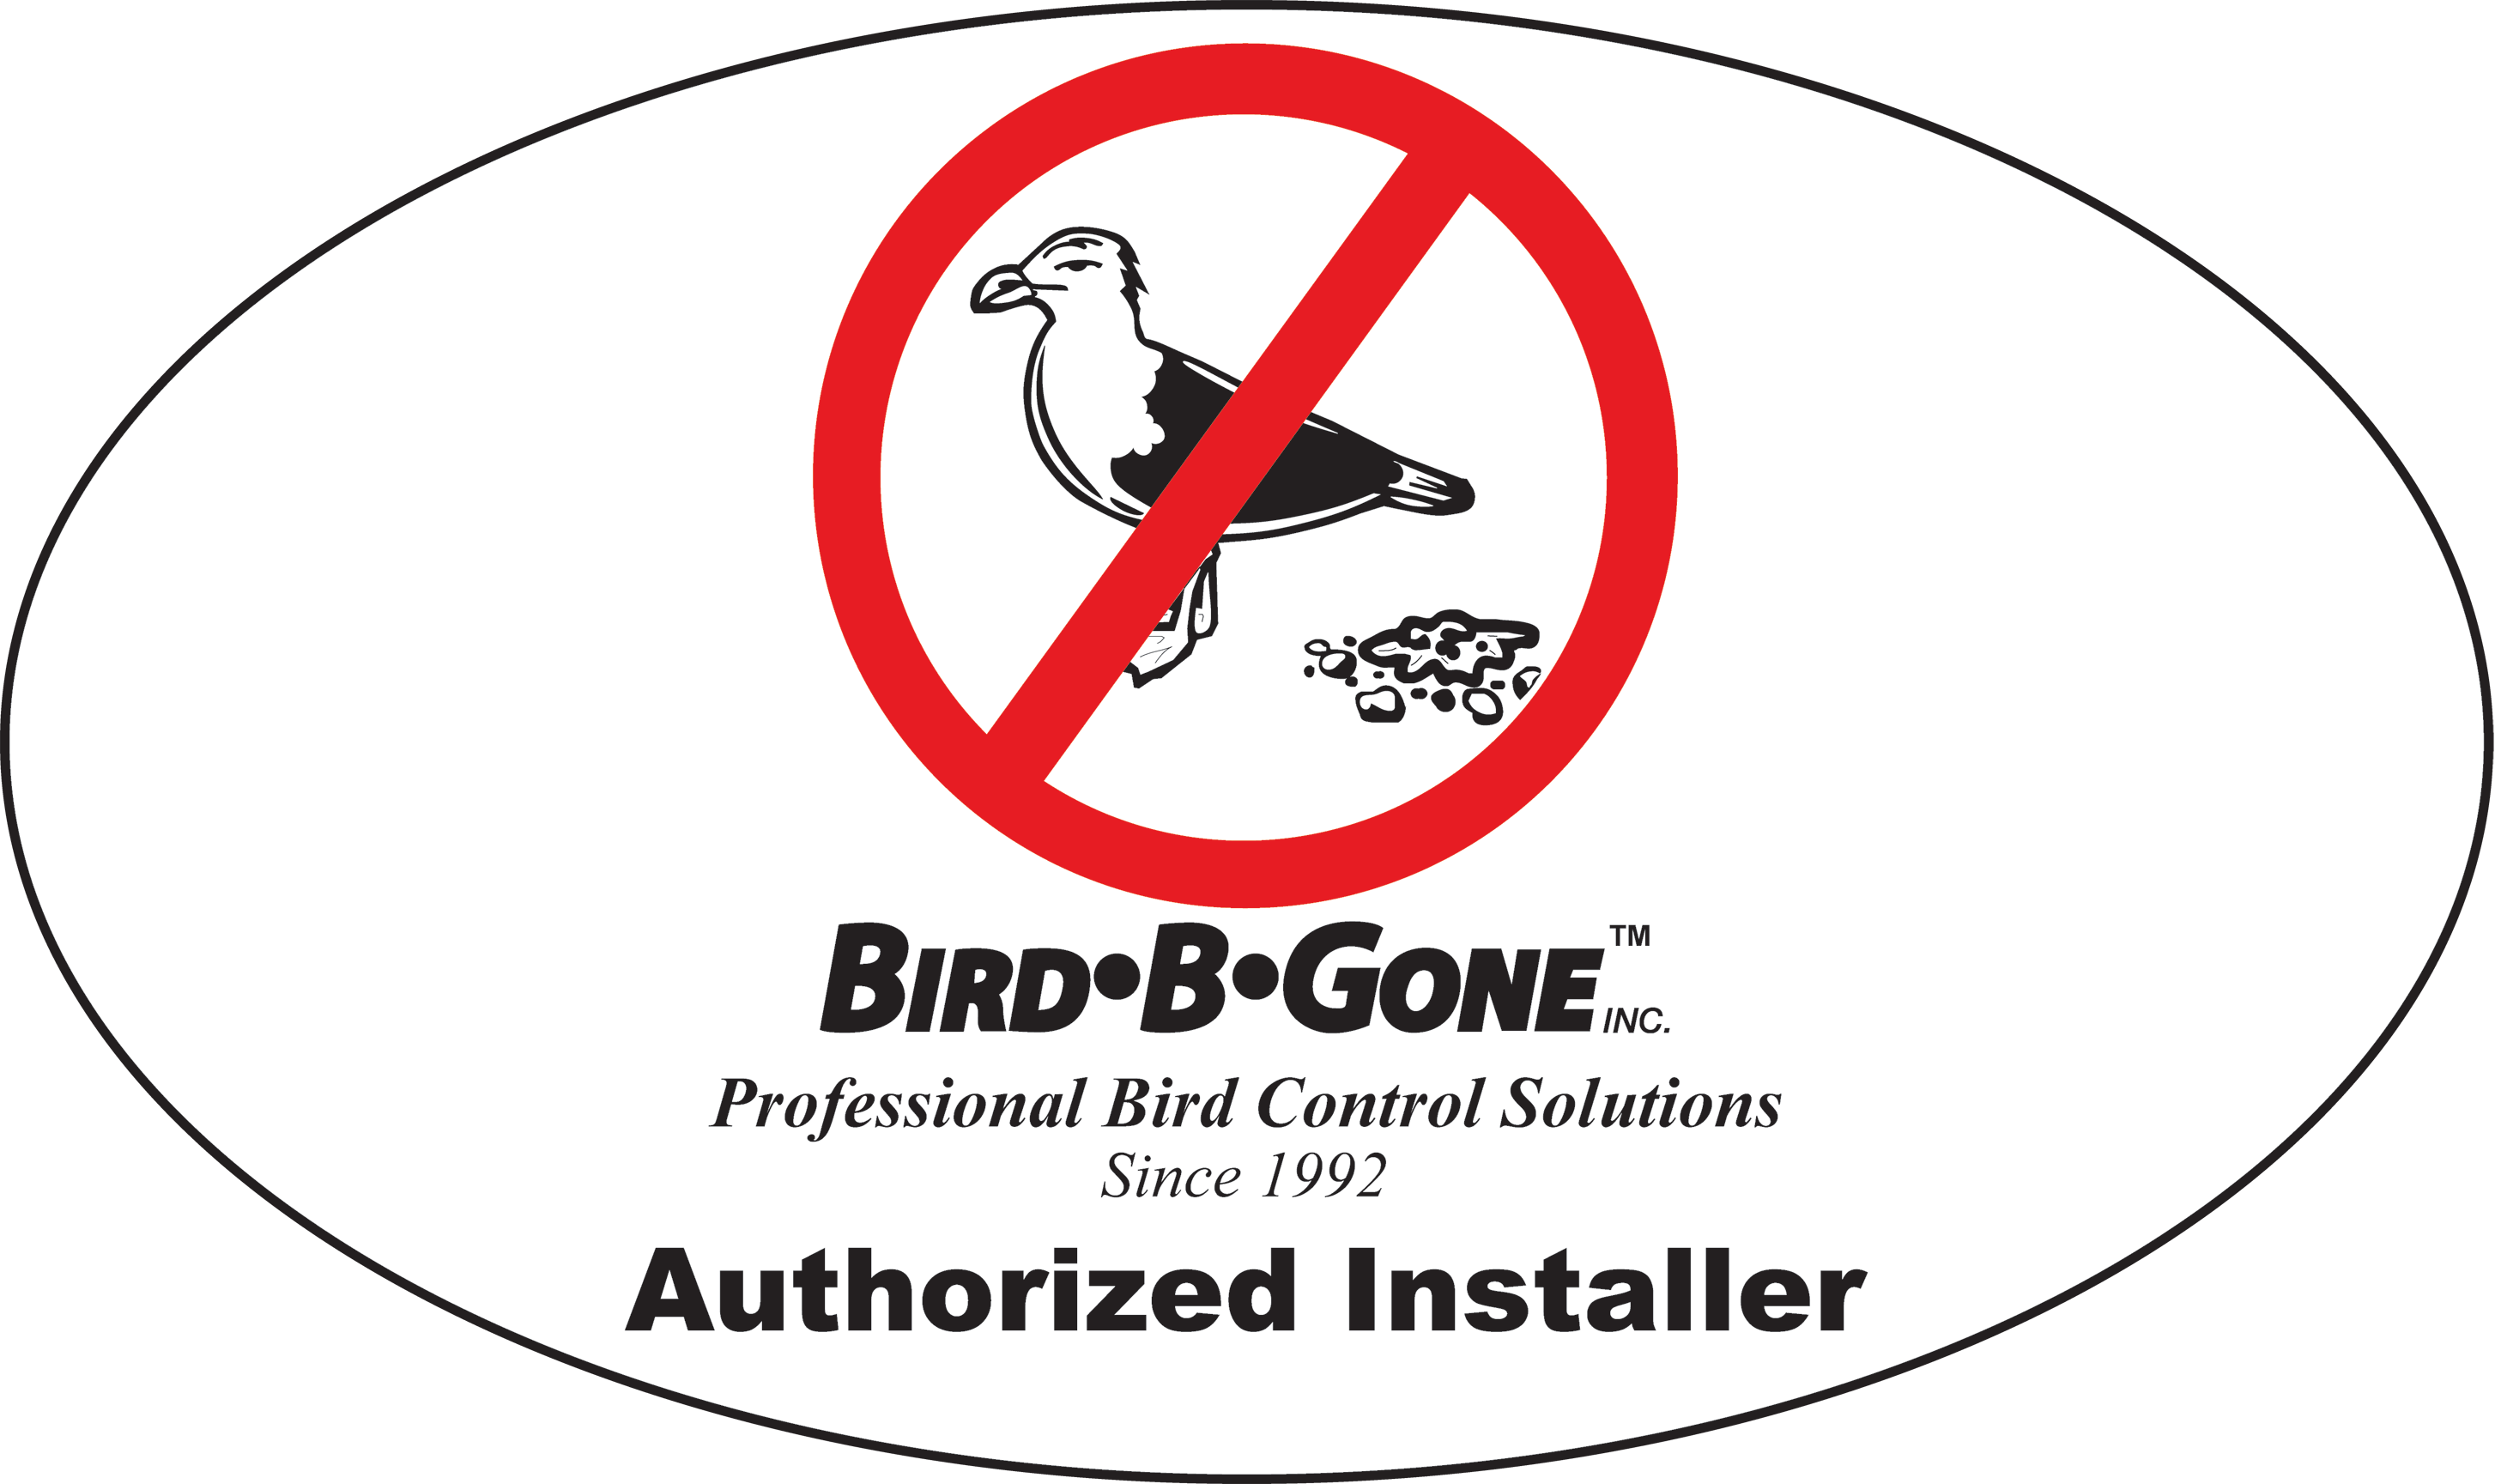 Bird-B-Gone Installers of Franklin, Brentwood and other Williamson County areas.